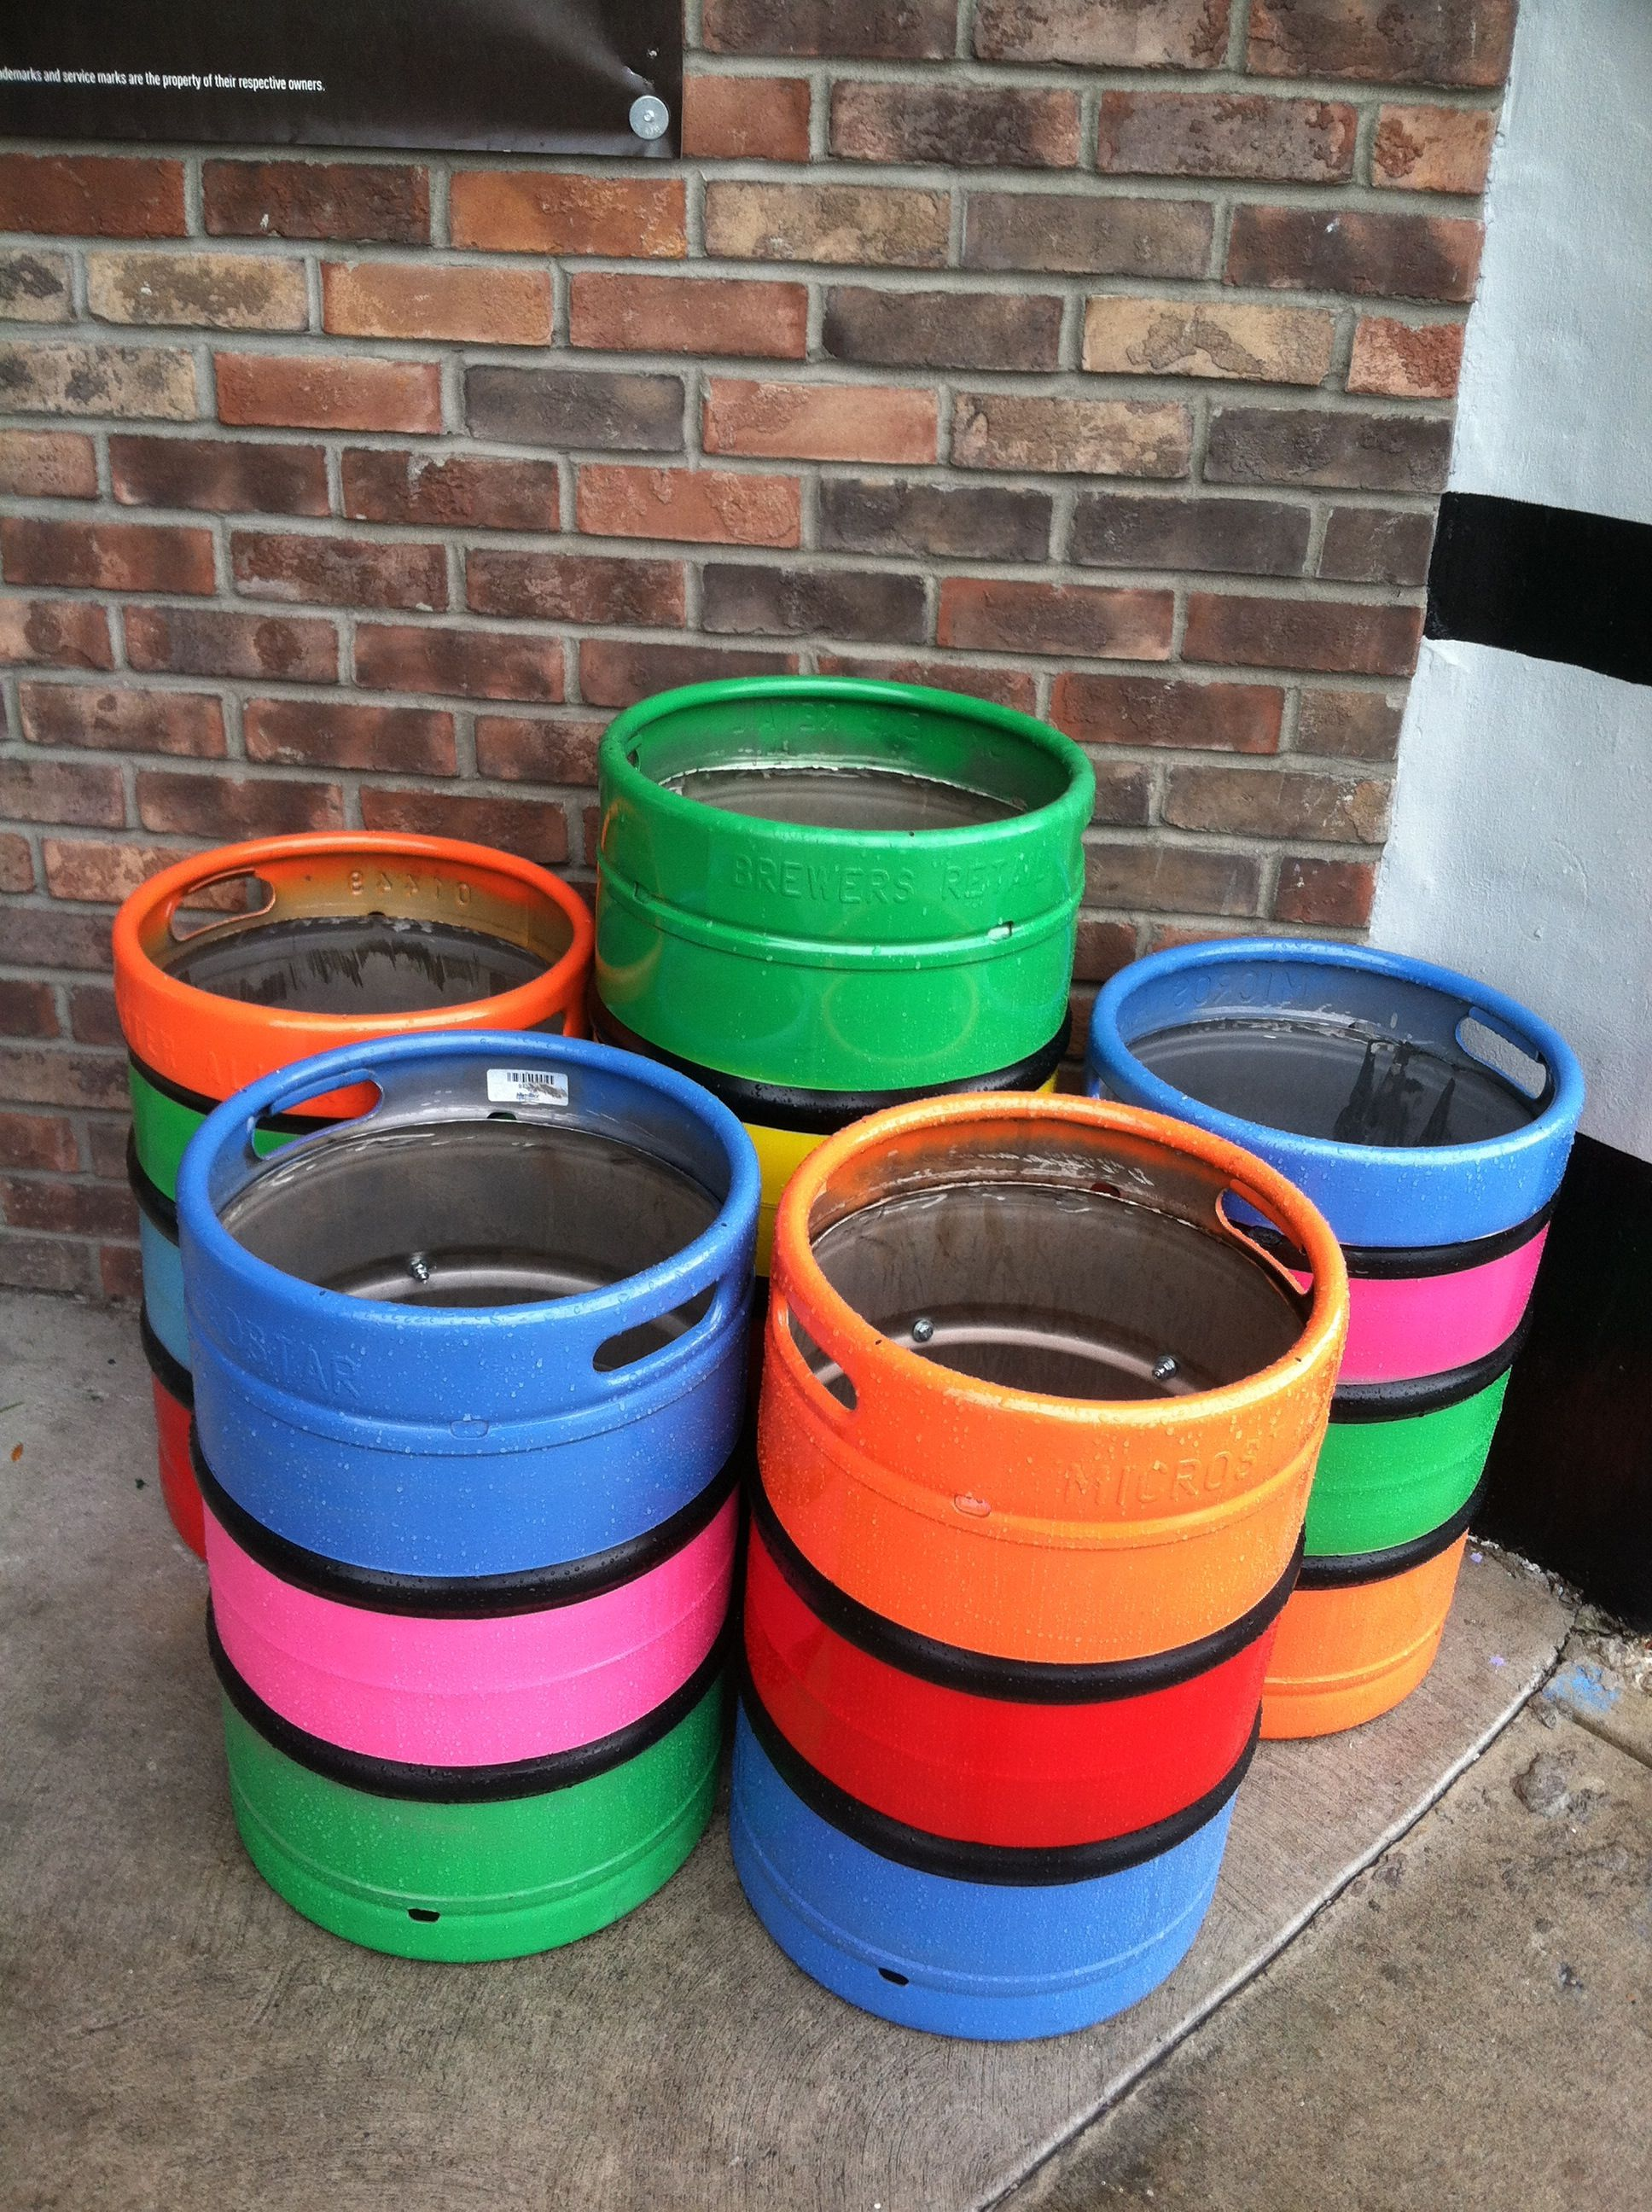 Beer Keg Planters Here Are Some Things To Do With A Beer